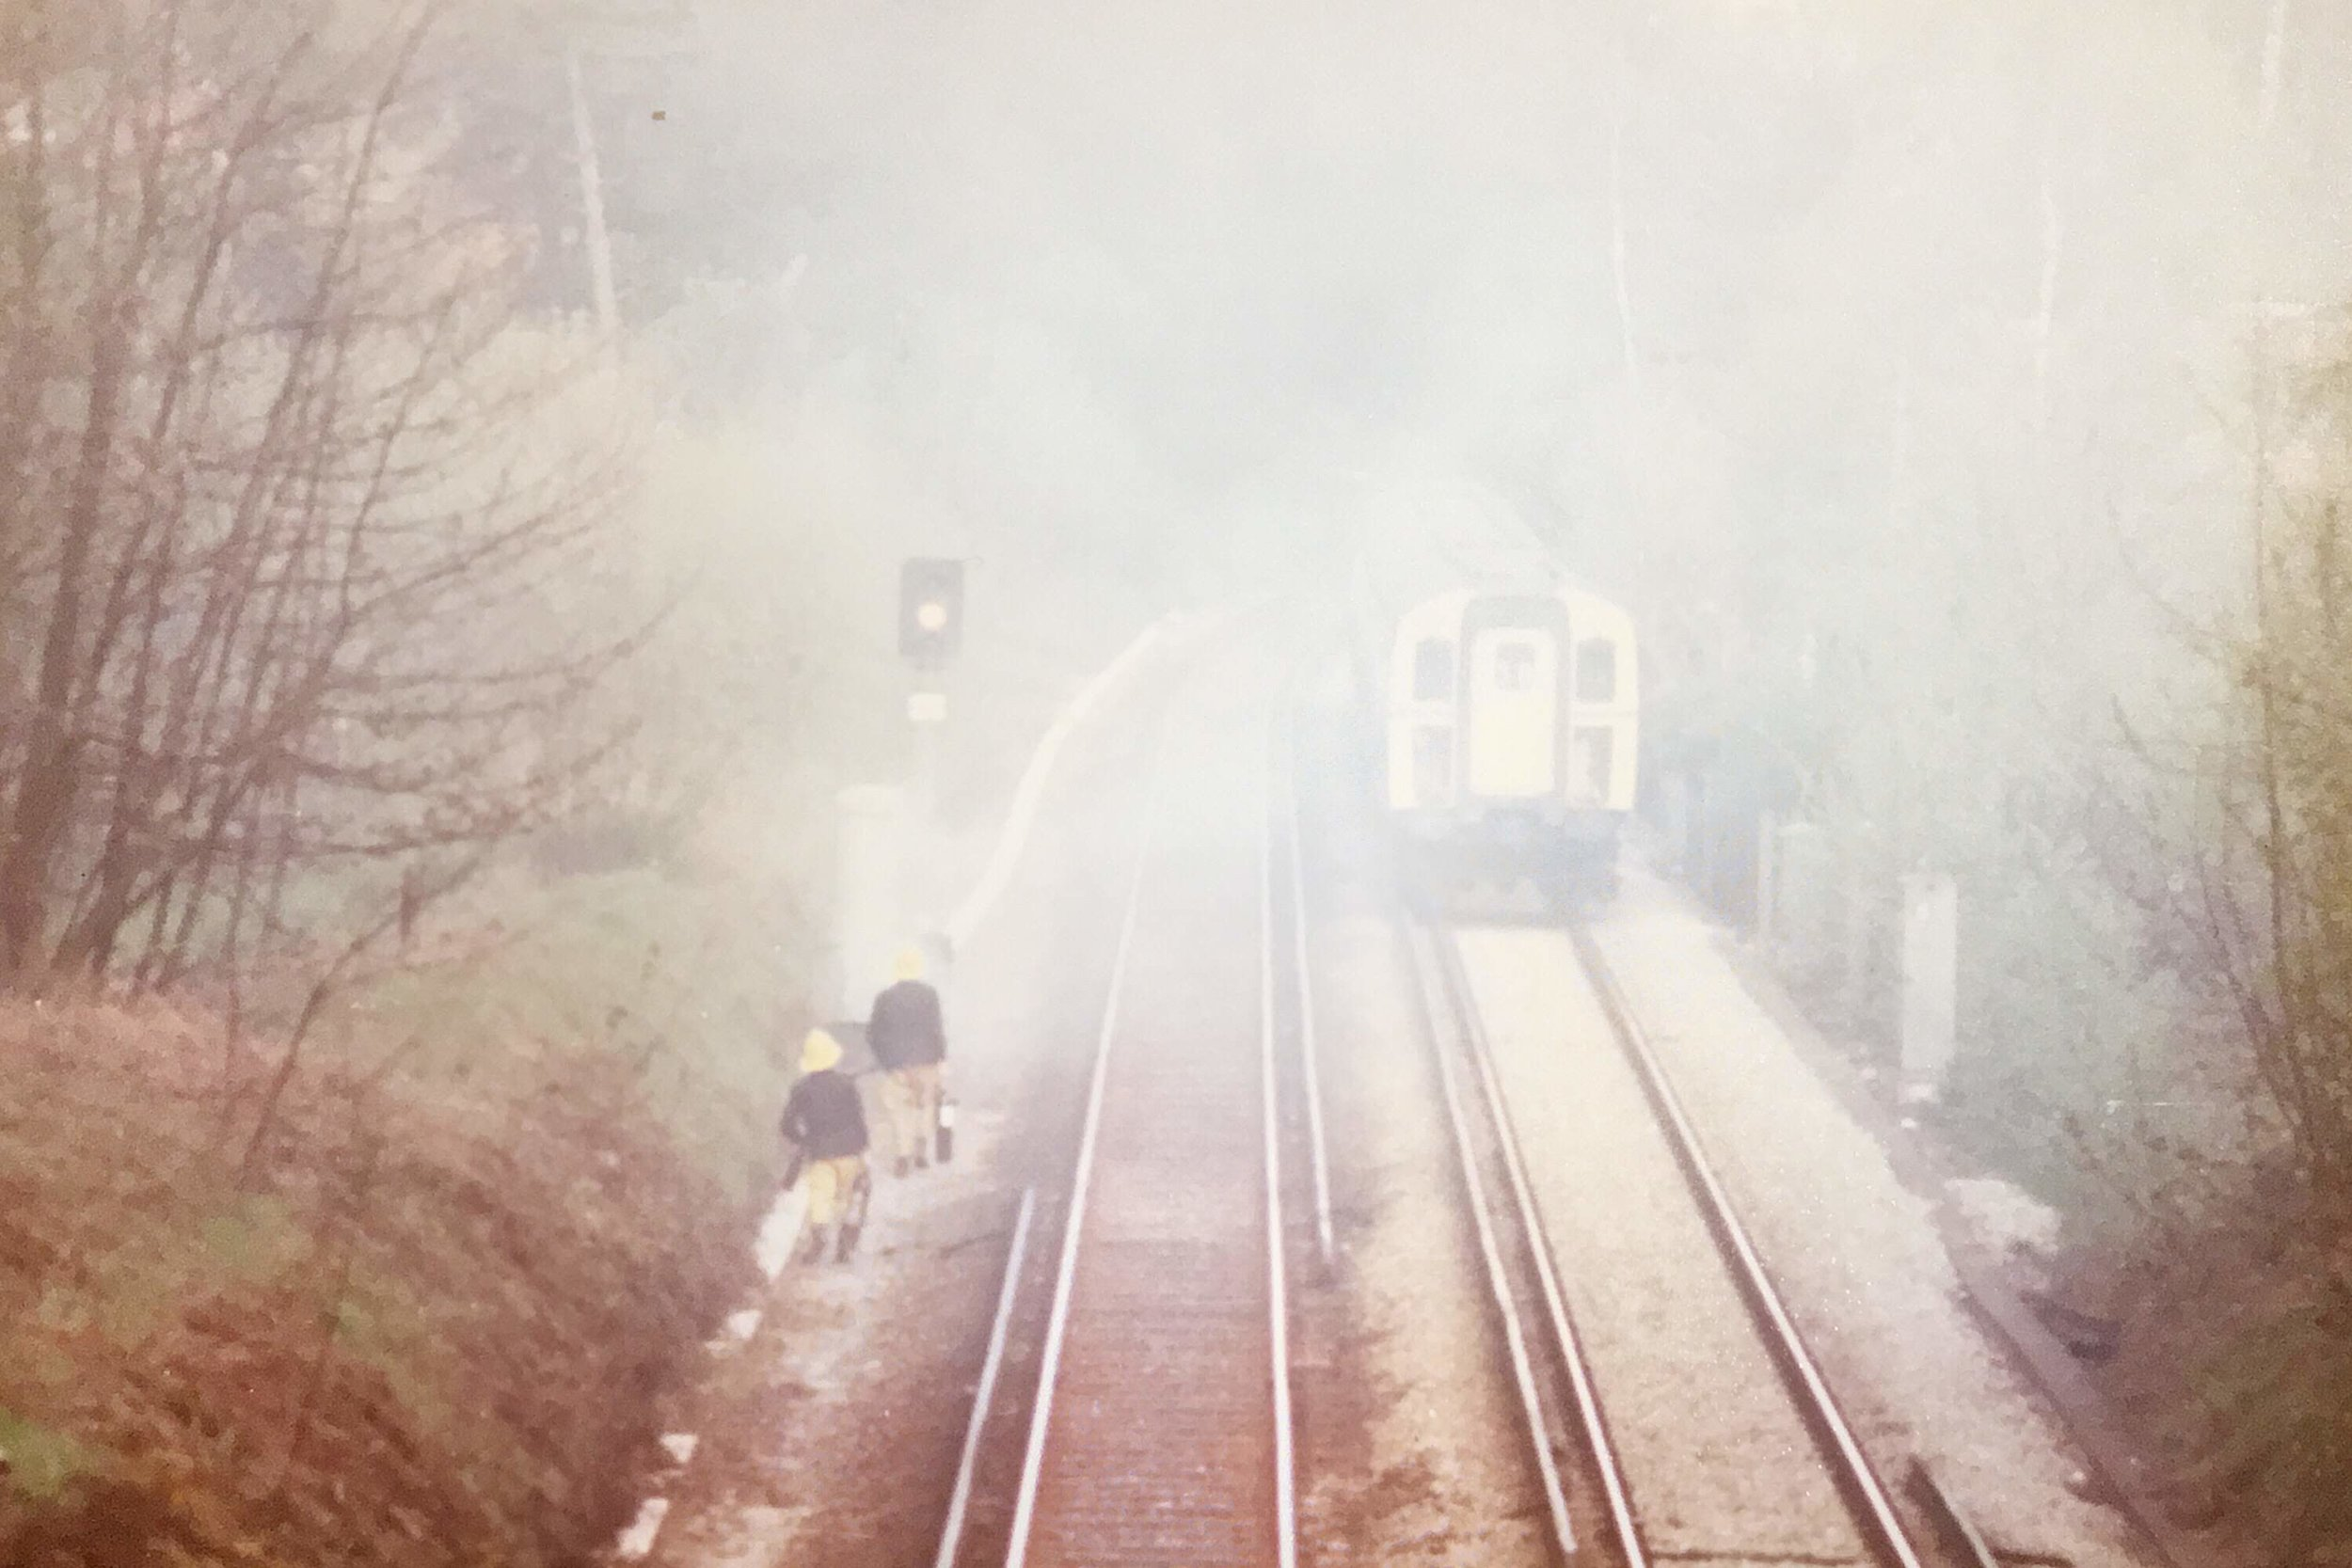 The railway line was halted